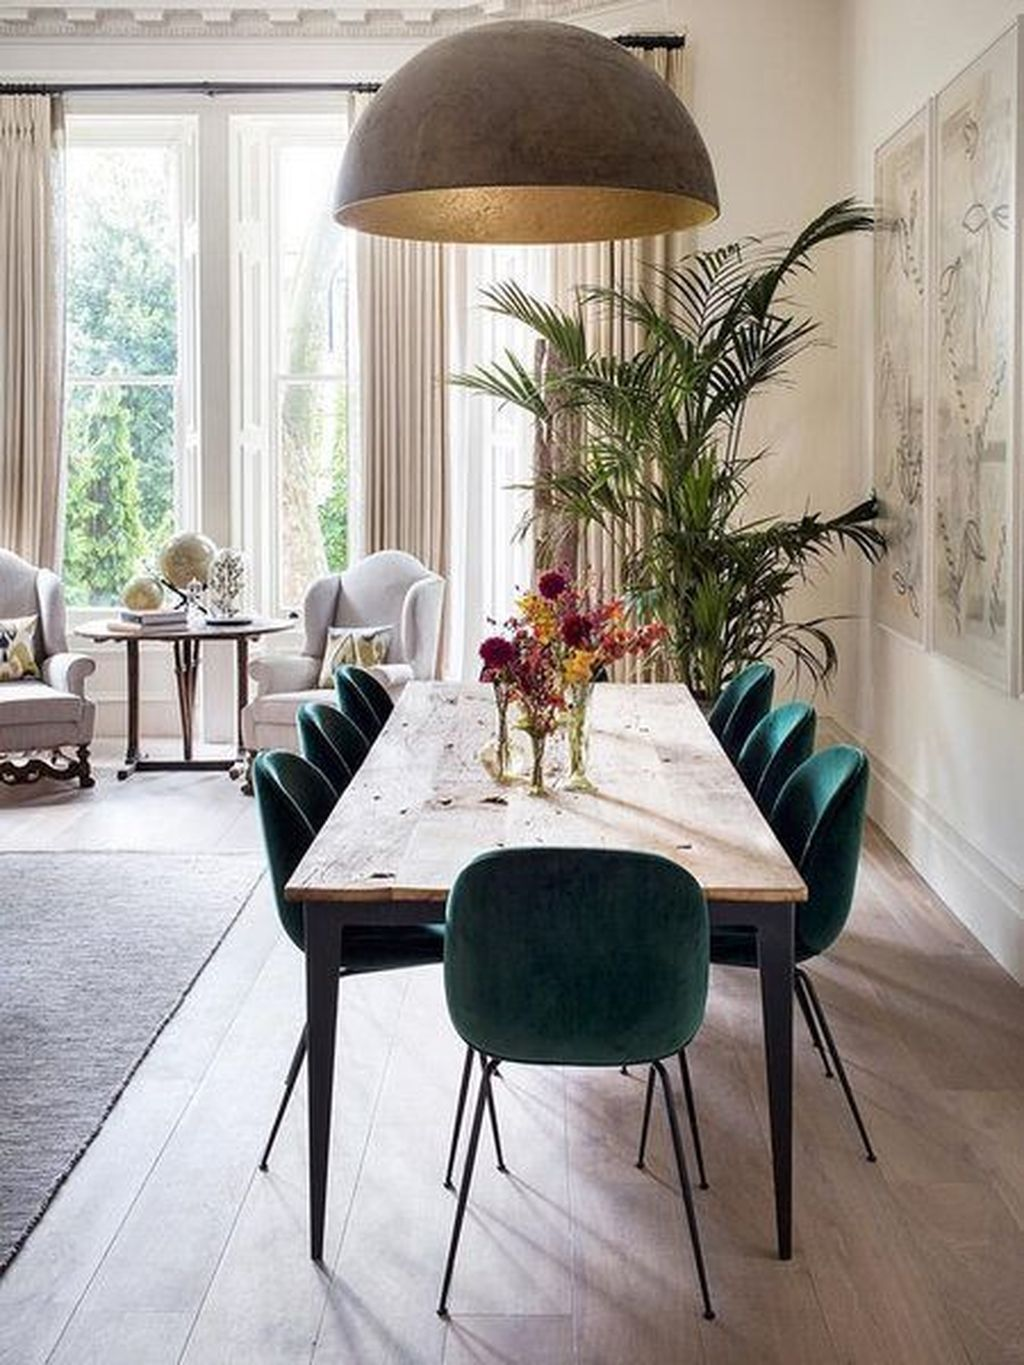 How To Make Your Dining Room More Elegant Discover More Room Design Details And D Scandinavian Dining Room Beautiful Dining Rooms Modern Dining Room